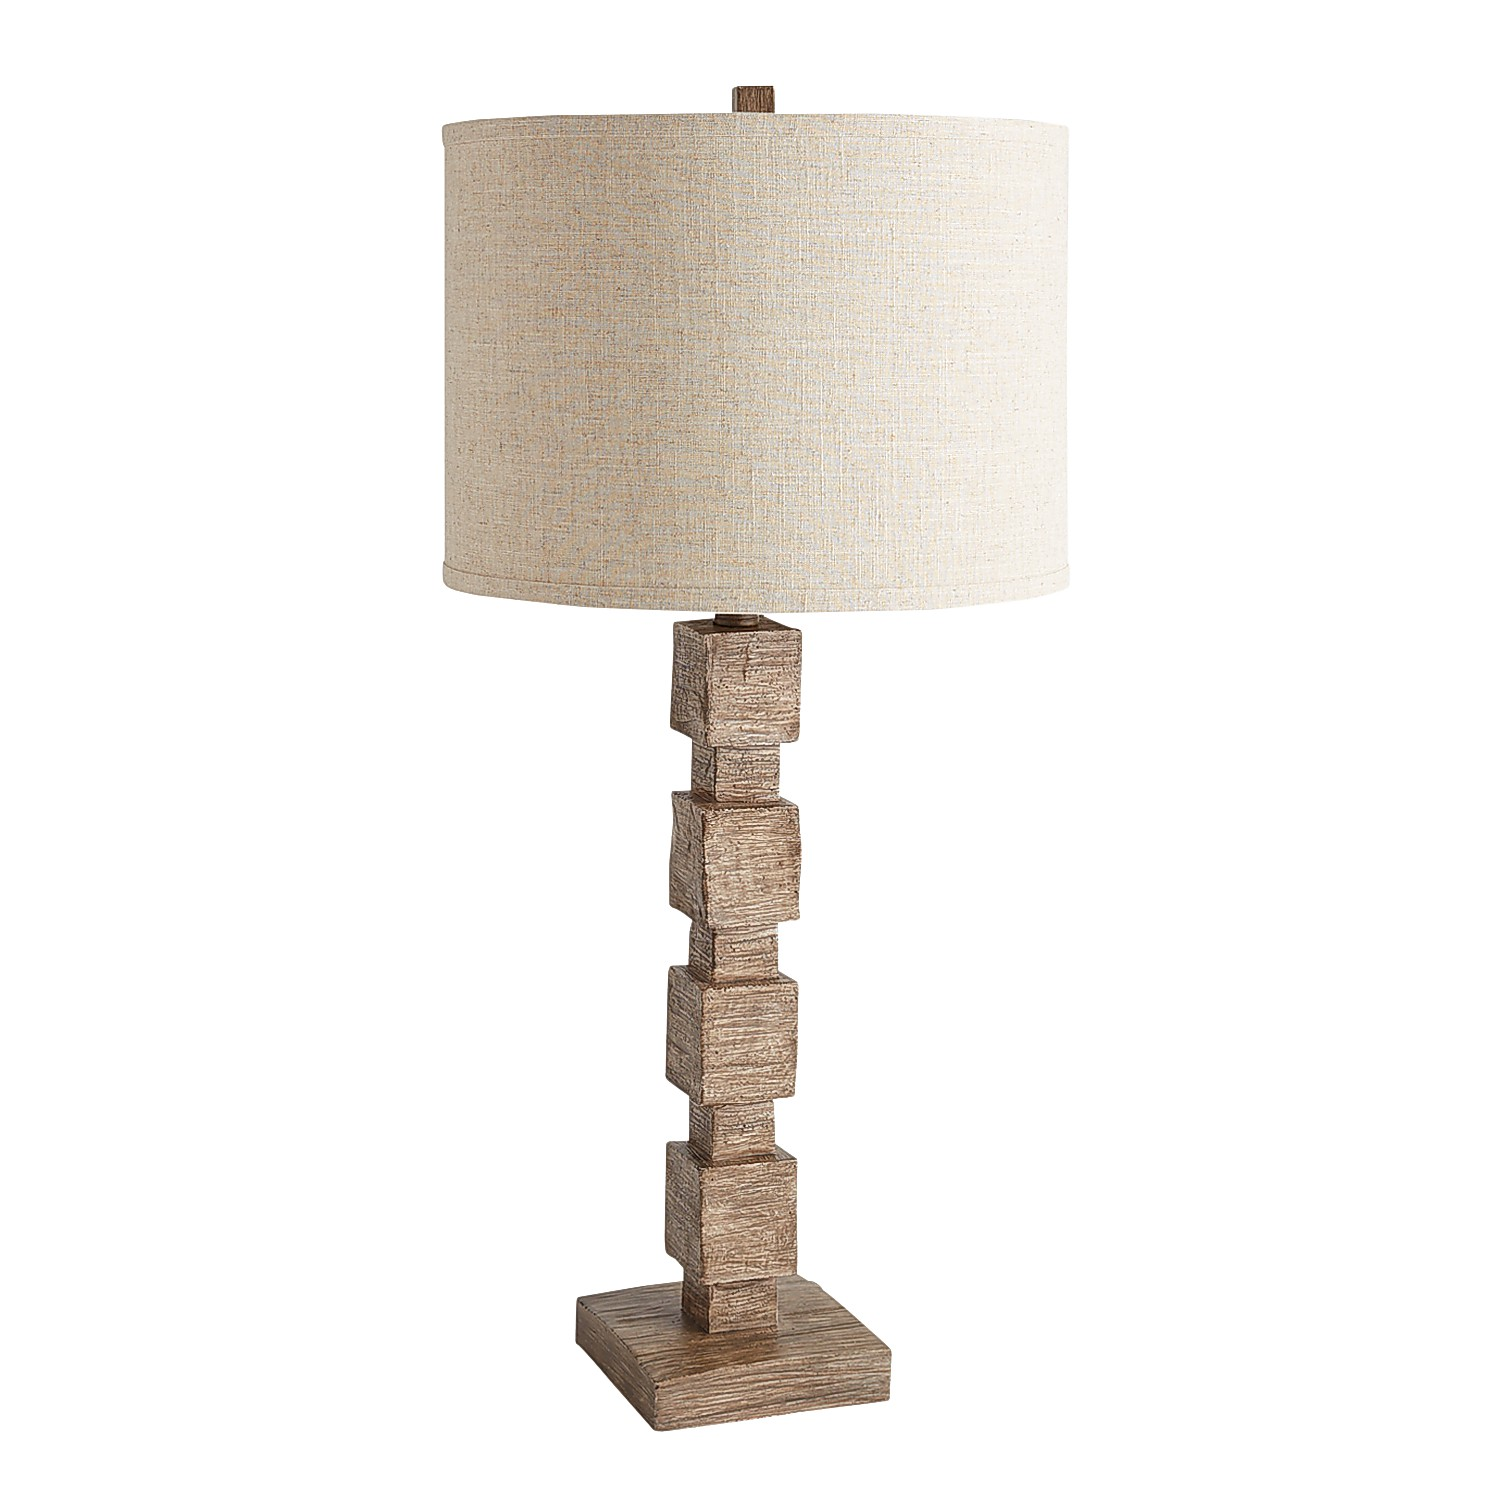 Square Wooden Table Lamp